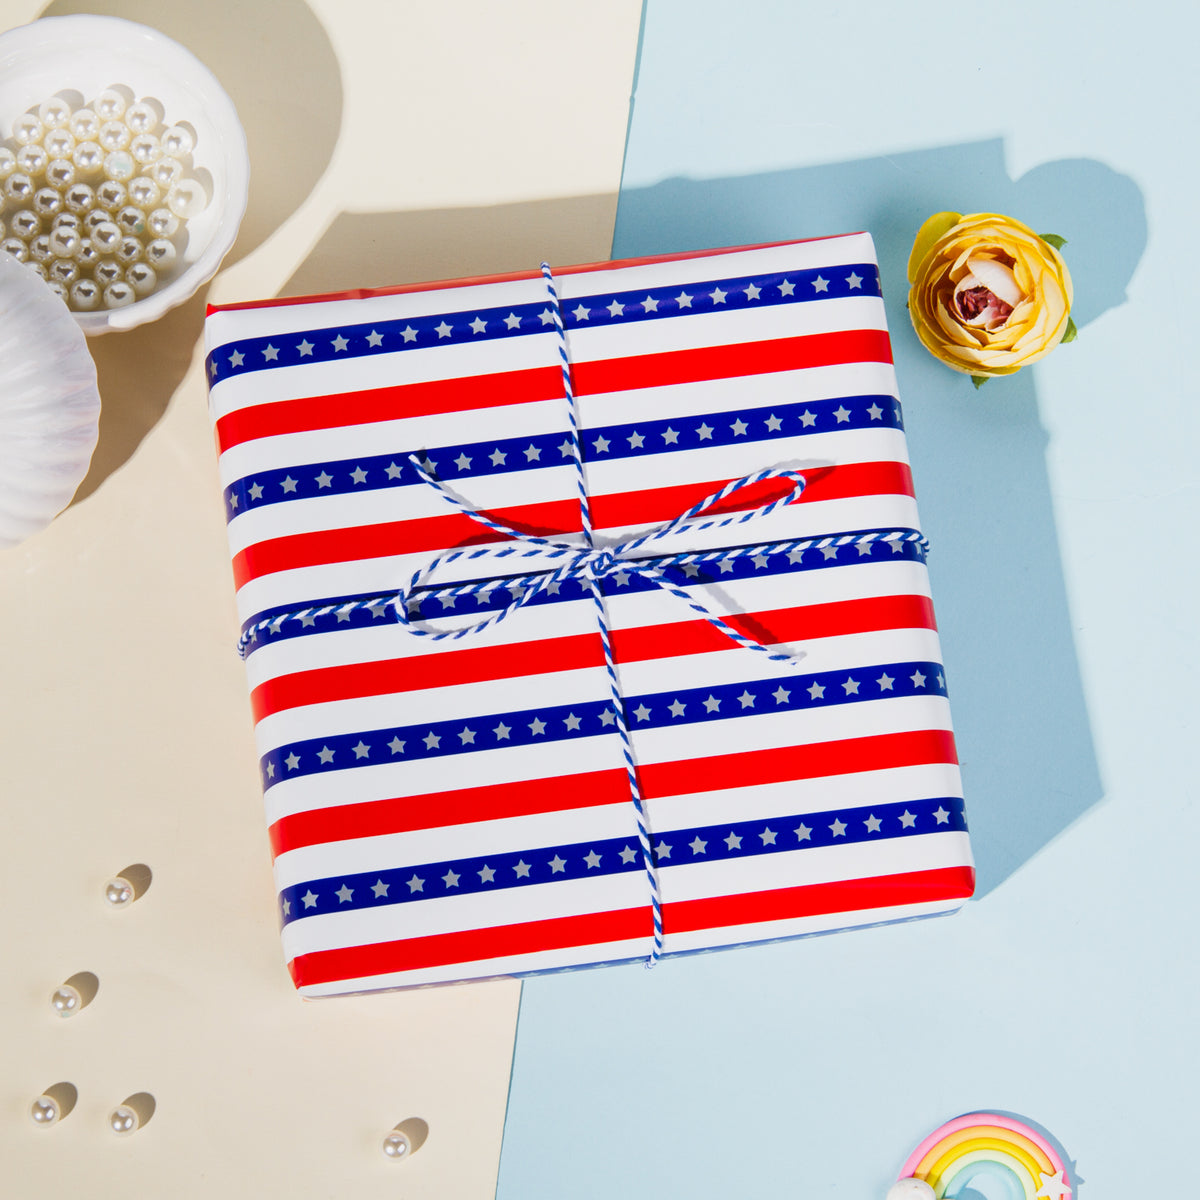 Wrapaholic-American-Flag-Wrapping-Paper-Sheets-5